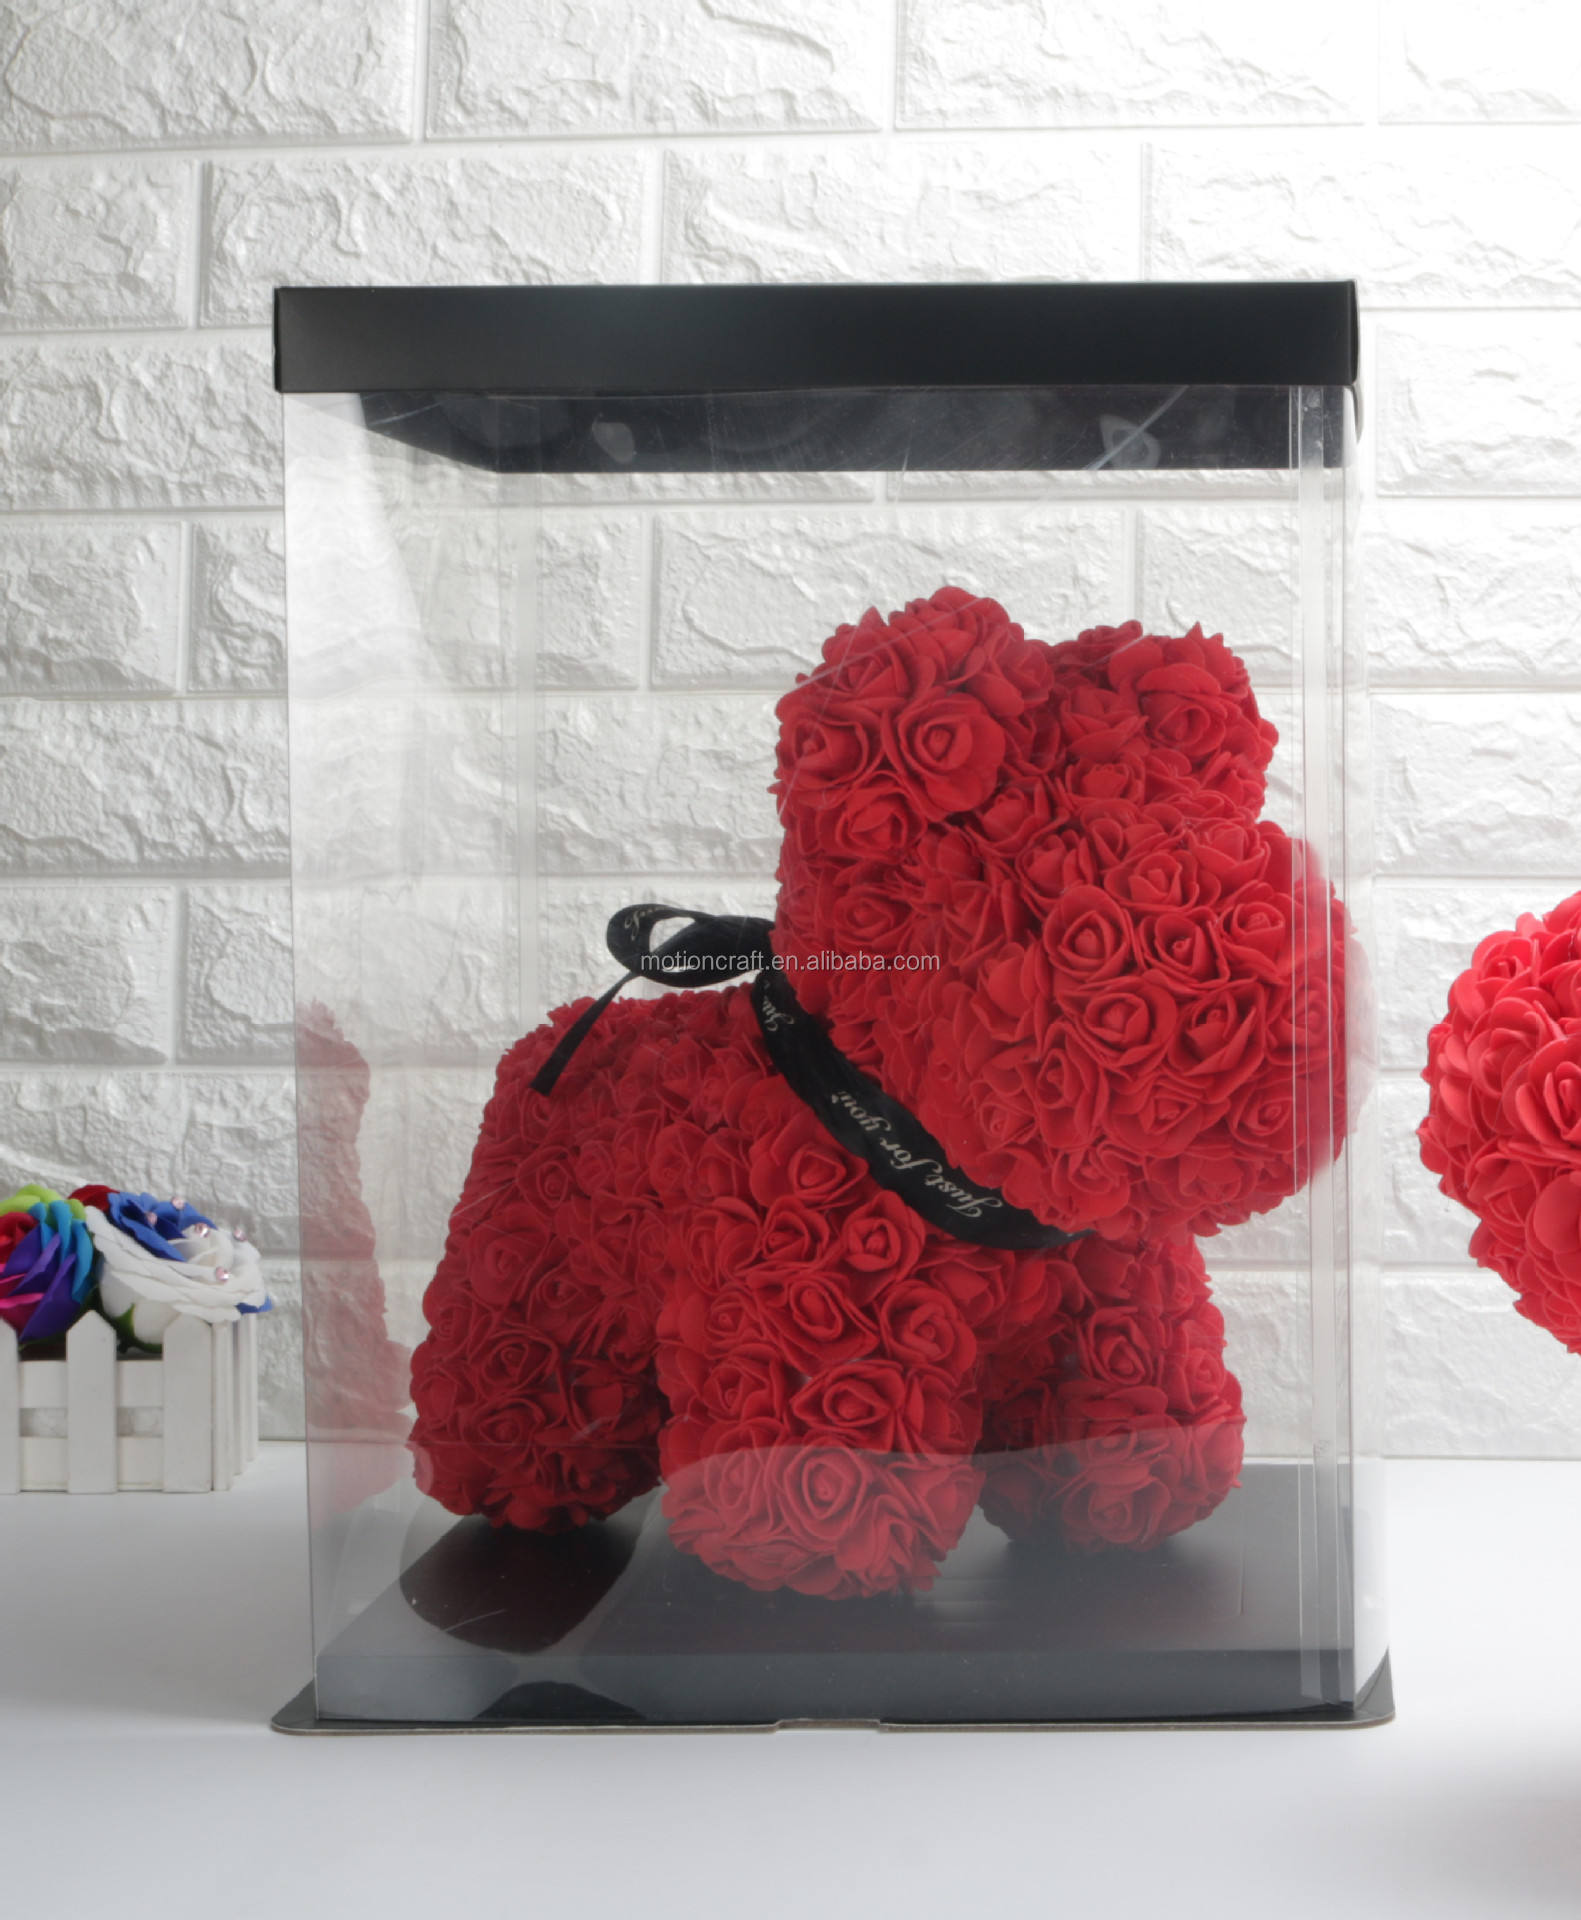 wholesale Super big PVC clear flower rose bear gift box for rose dog size 43*27*37cm